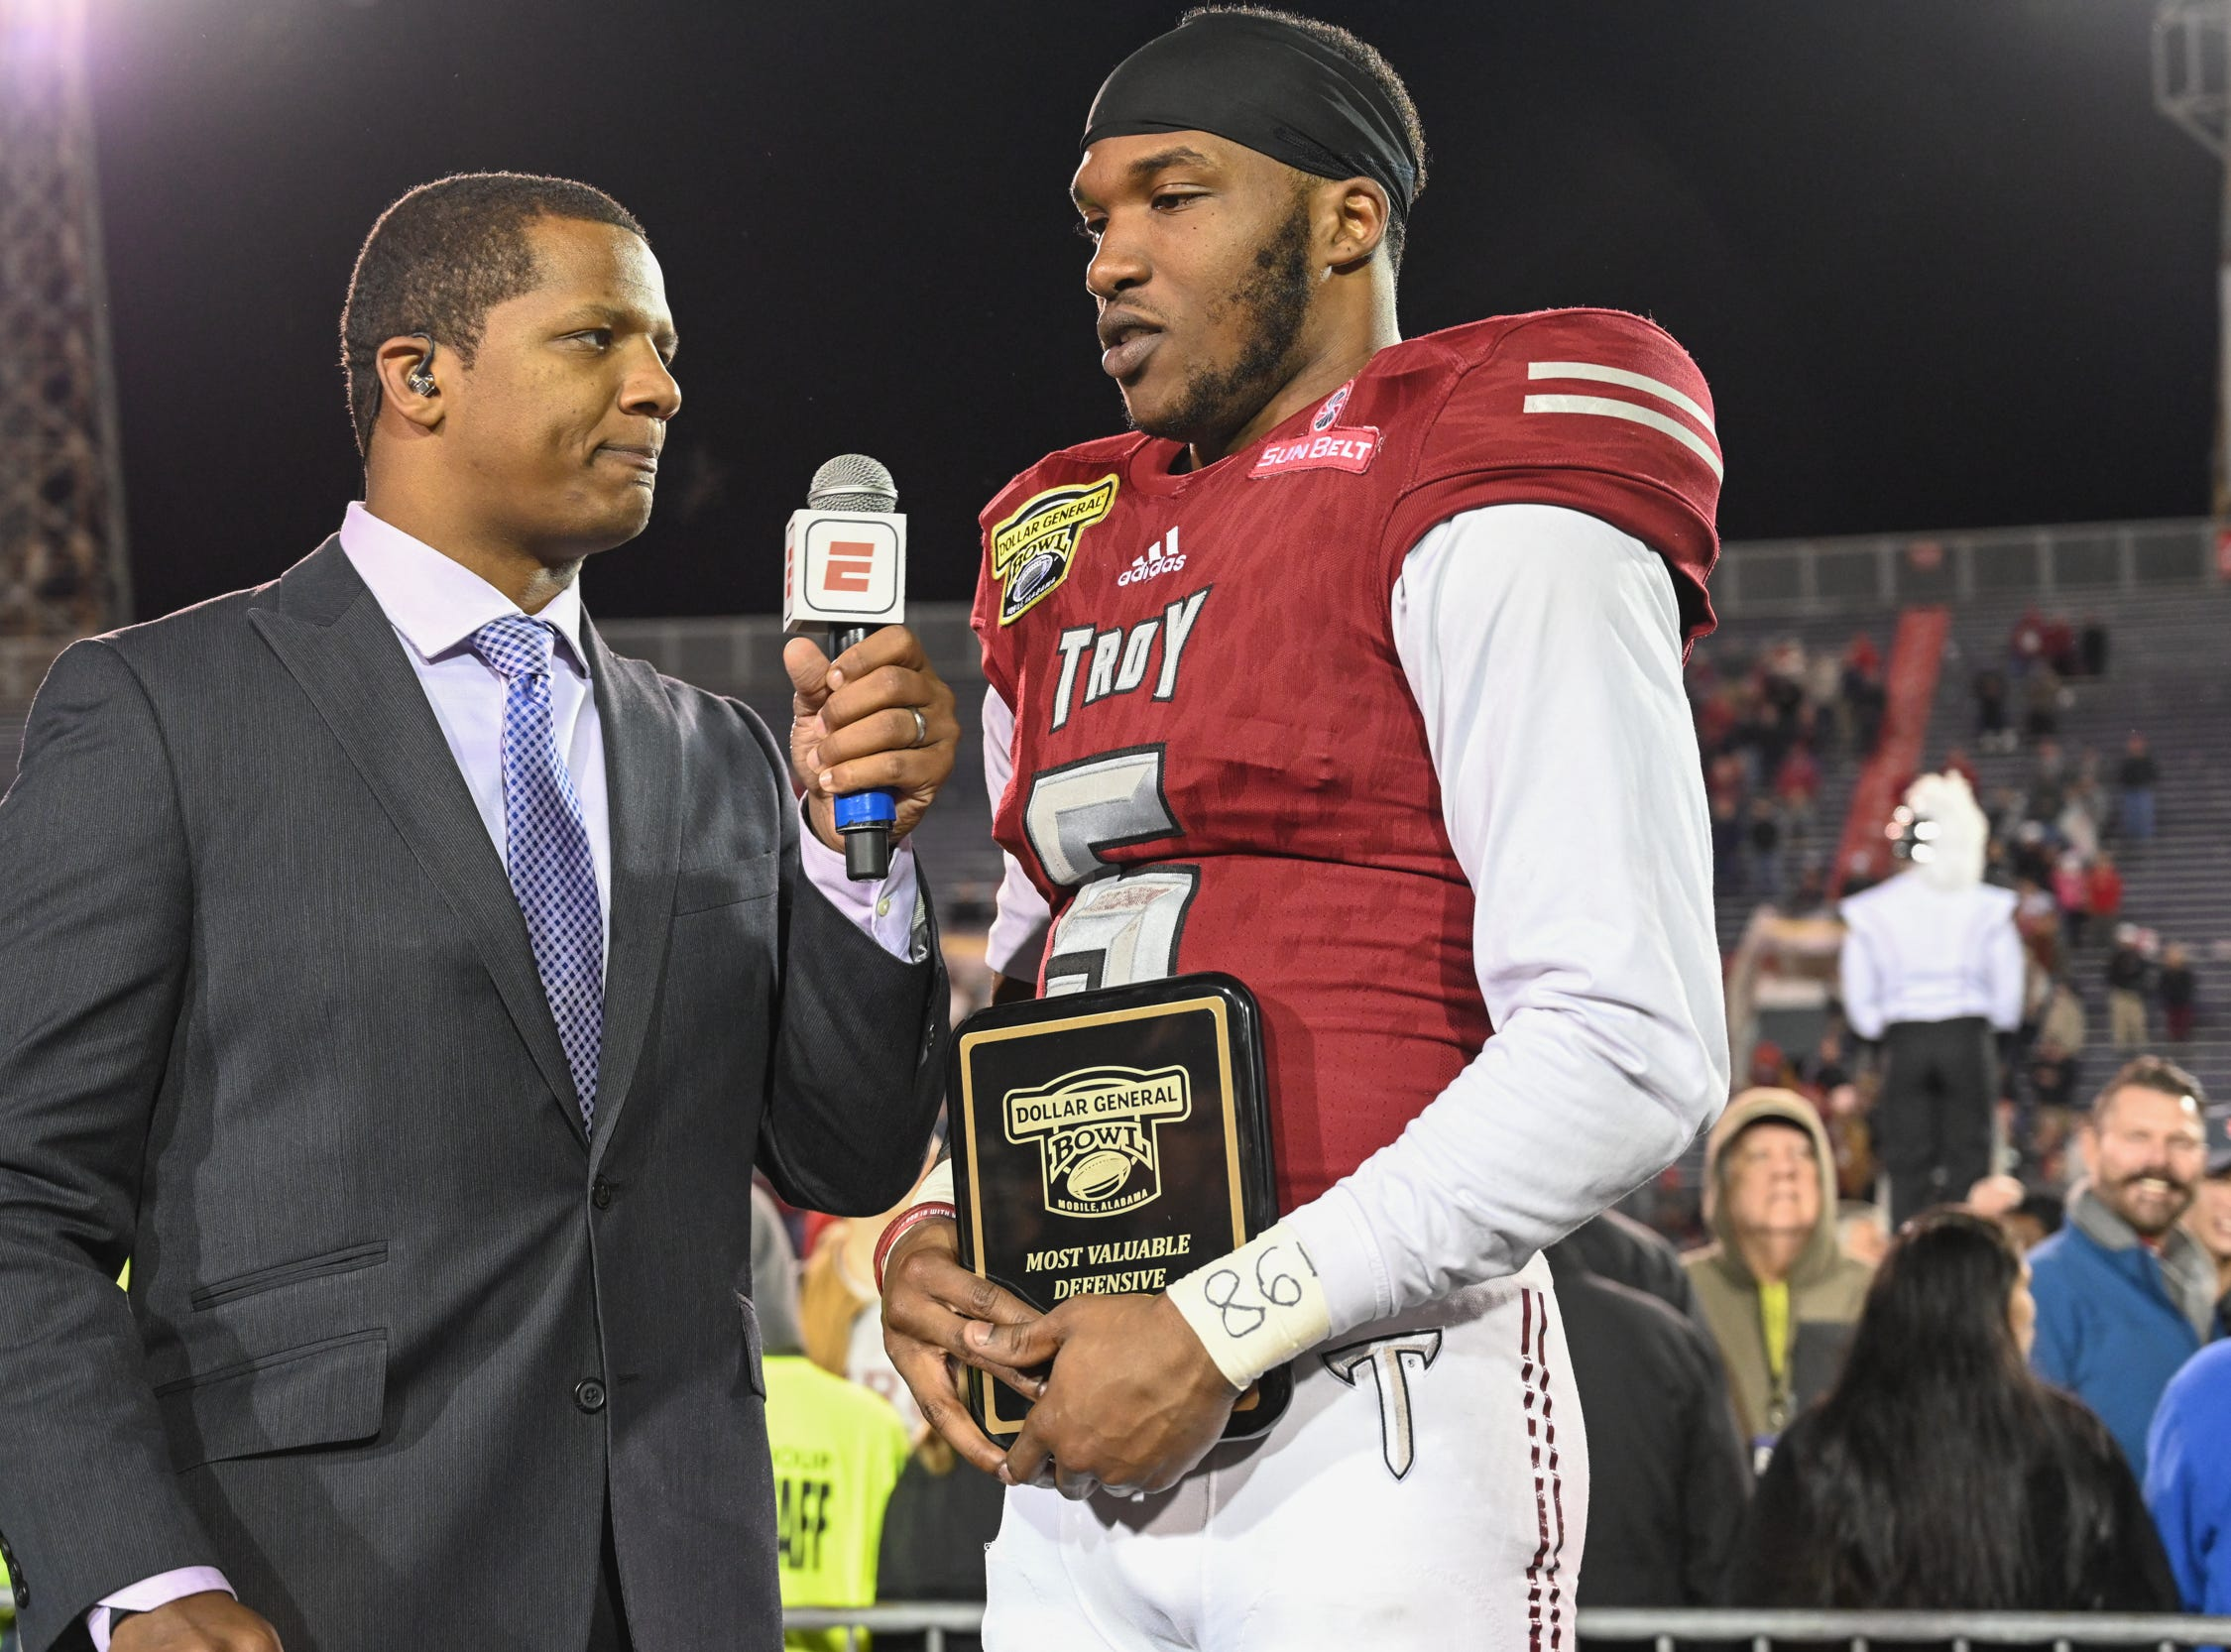 Troy Trojans safety Cedarius Rookard (5) is named defensive player of  the Dollar General Bowl held at Ladd-Peebles Stadium in Mobile on Saturday, Dec. 22, 2018.